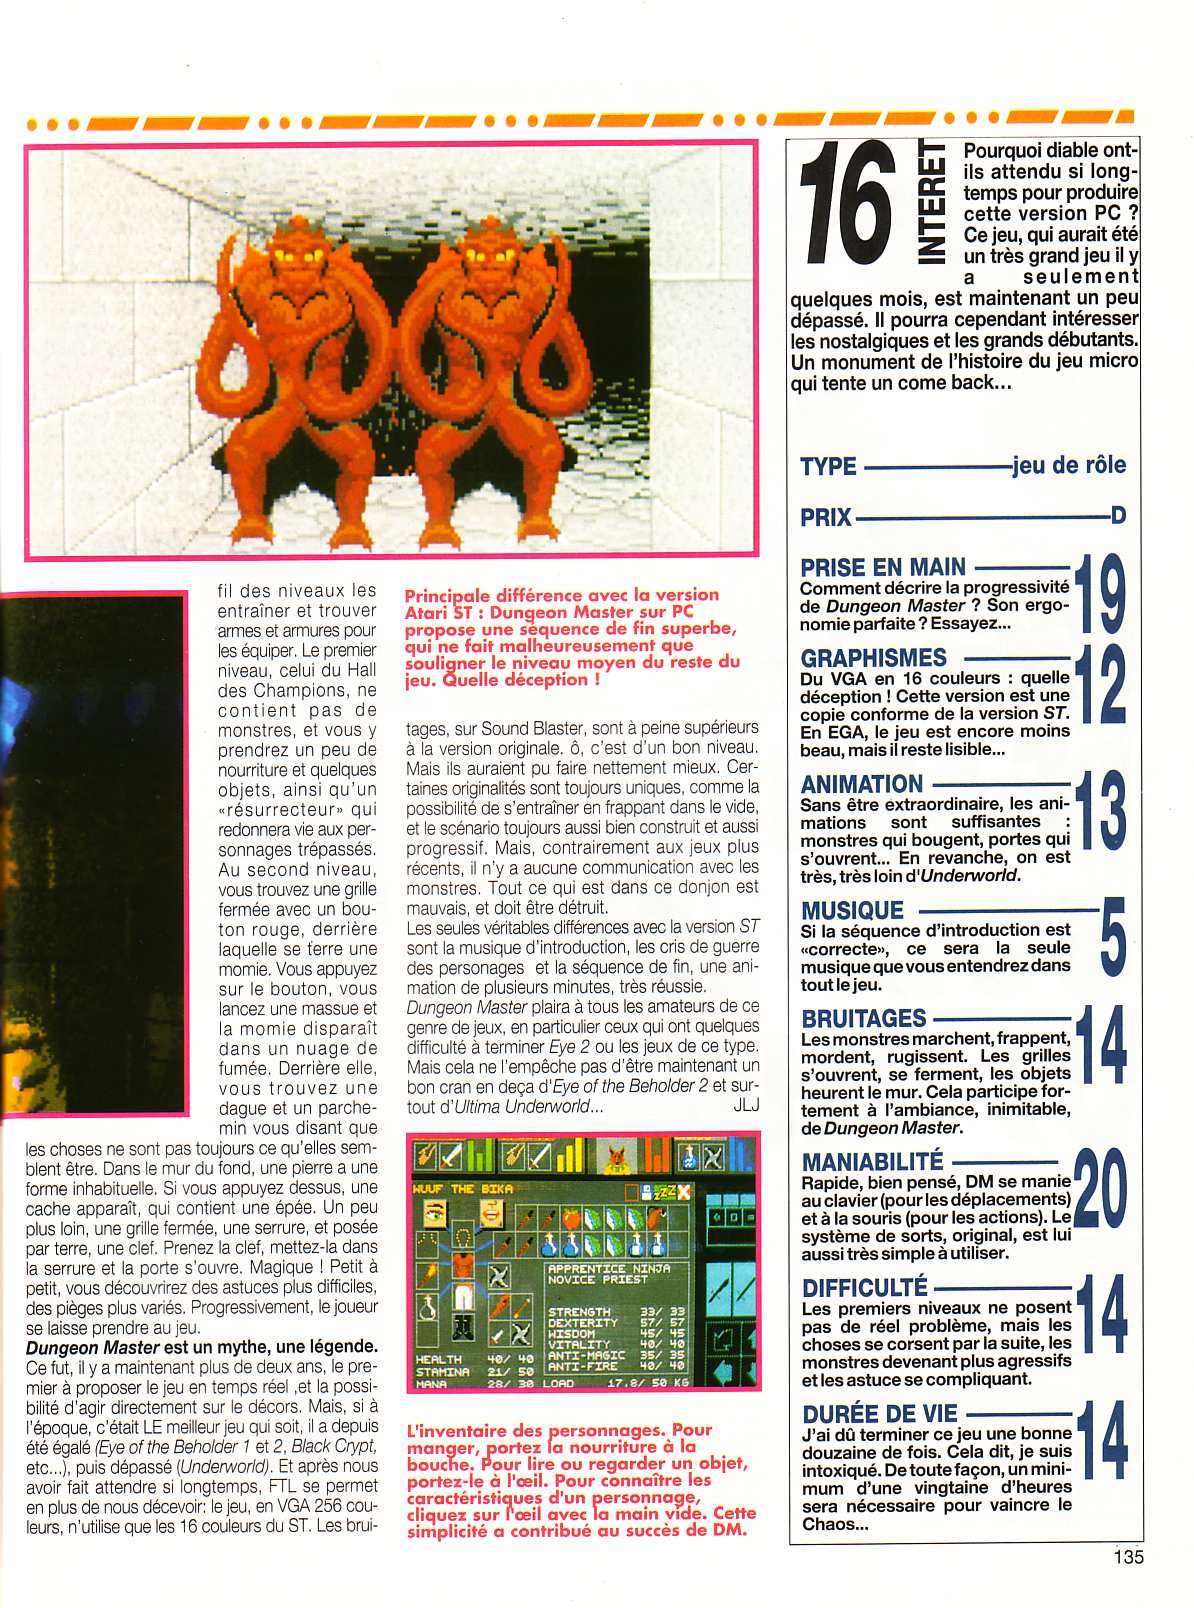 Dungeon Master for PC Review published in French magazine 'Tilt', Issue #106, October 1992, Page 135